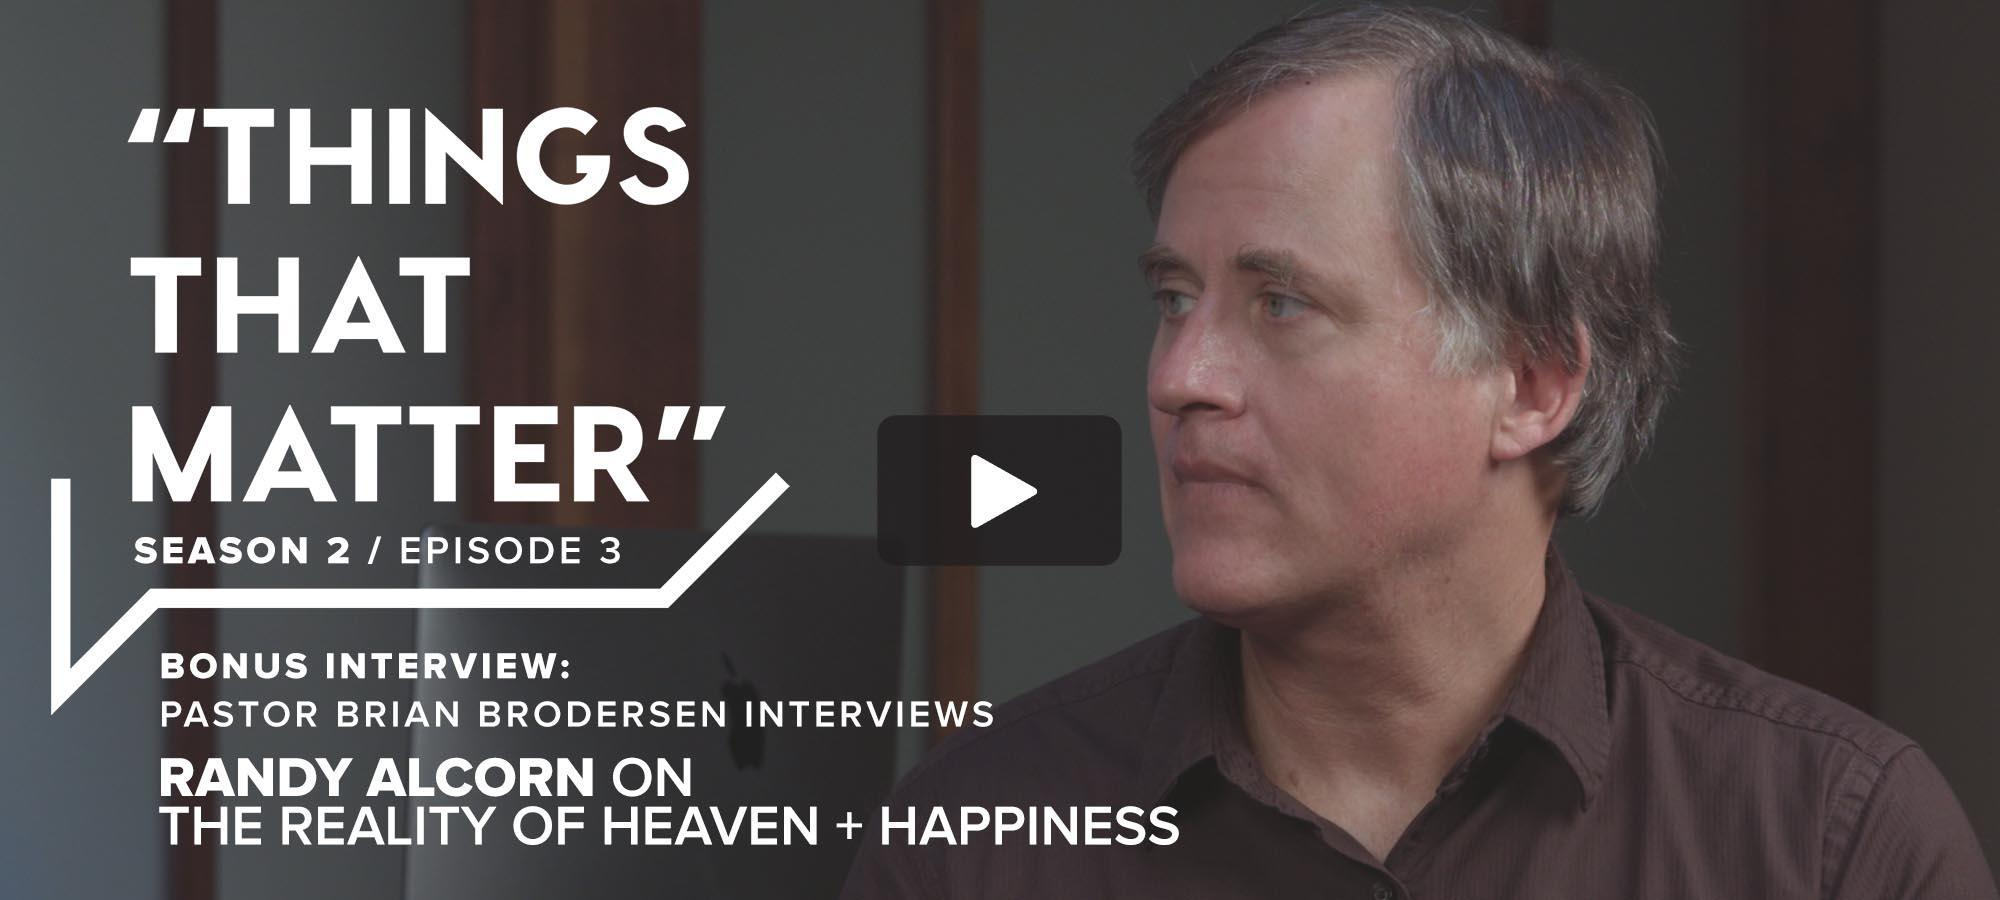 TTM S2 E3 - The Reality of Heaven and Happiness: Vault